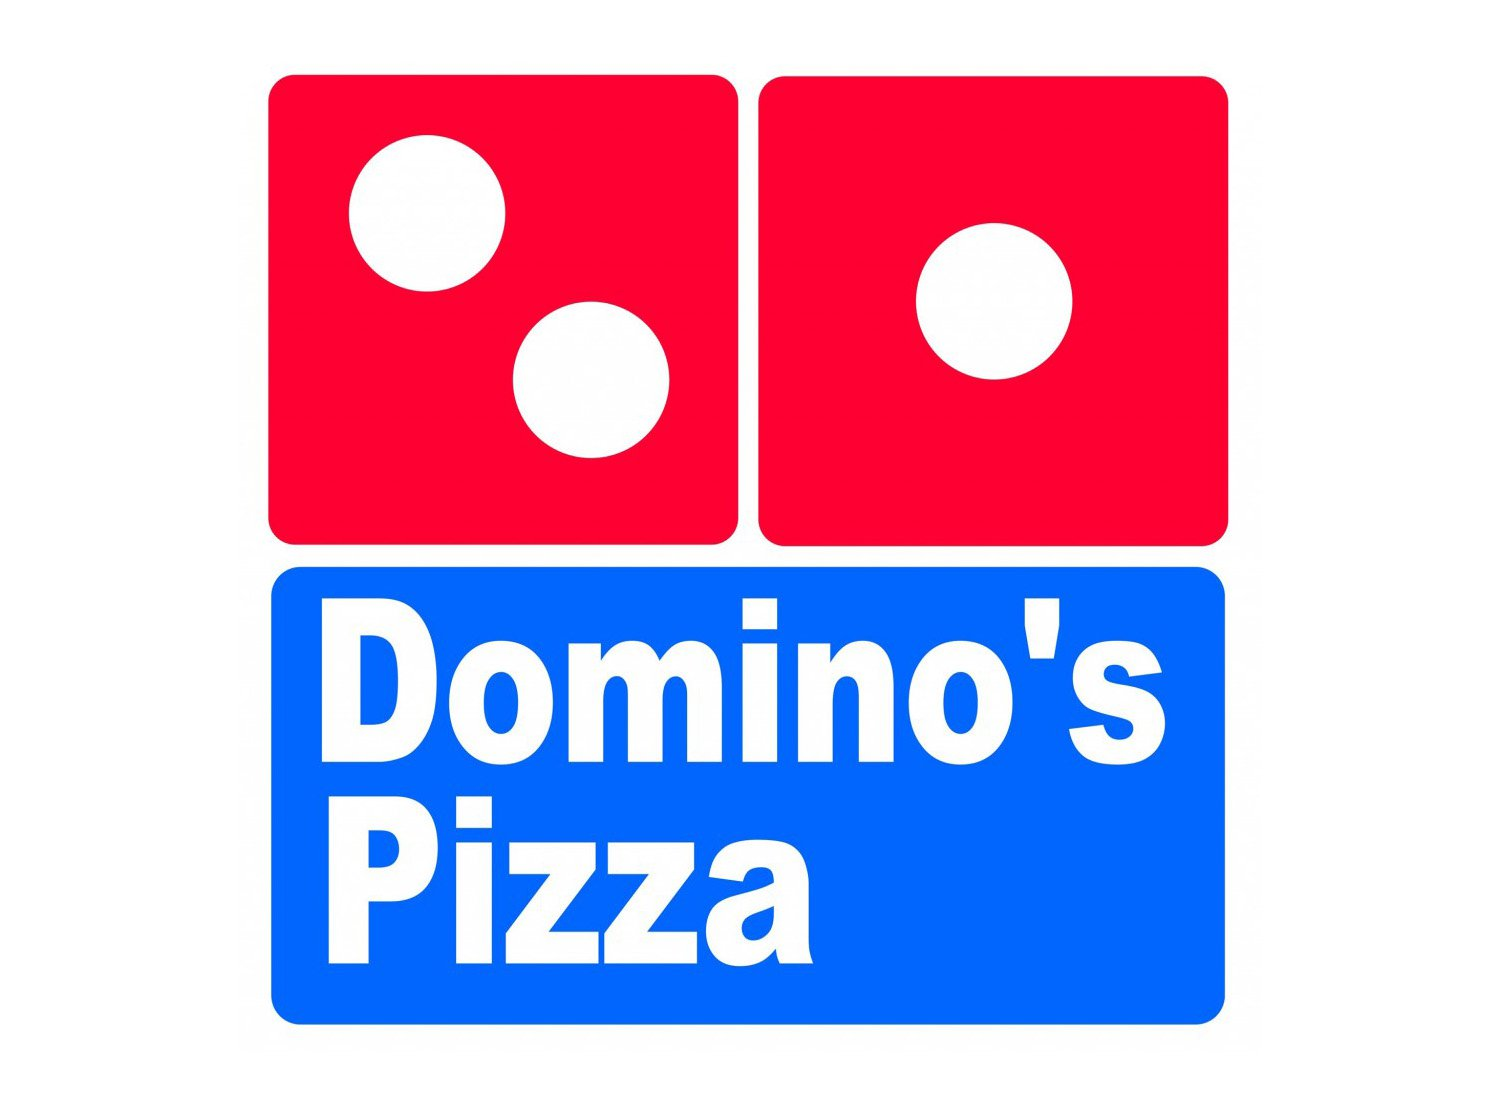 logo dominoes pizza vector and clip art inspiration